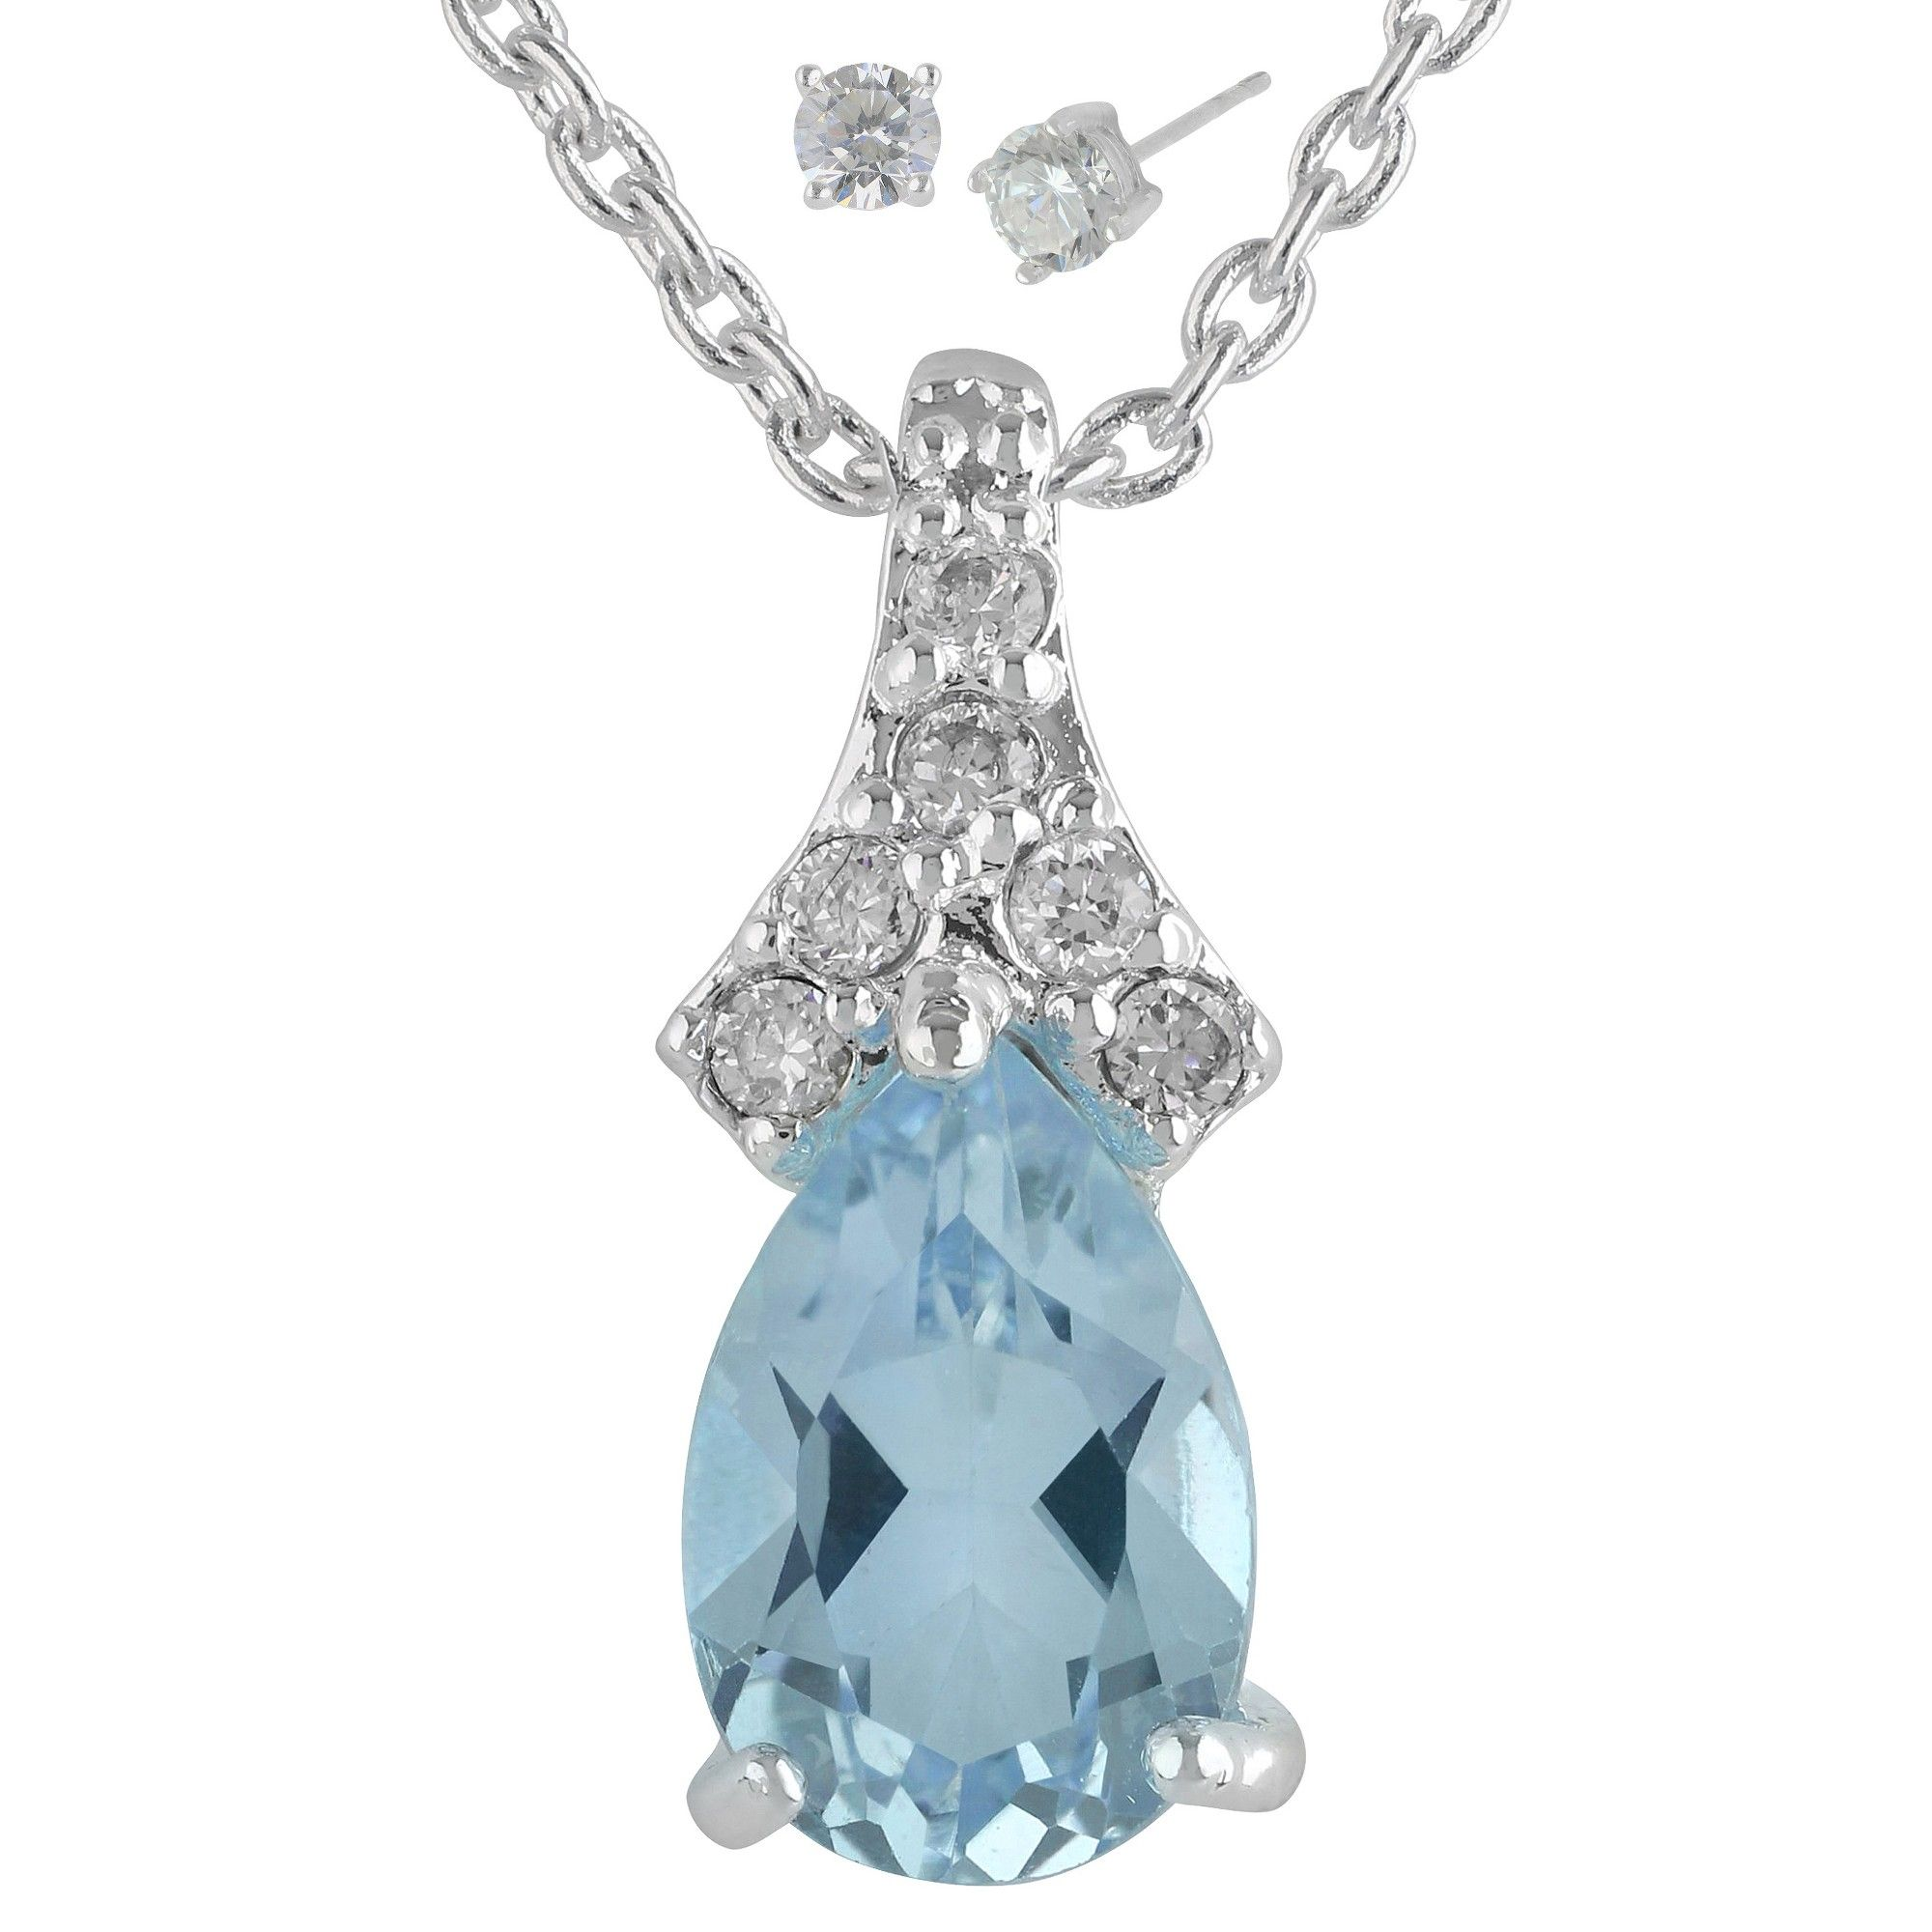 Womens silver plated pendant necklace with pear topaz earring womens silver plated pendant necklace with pear topaz earring silverblue 18 aloadofball Choice Image